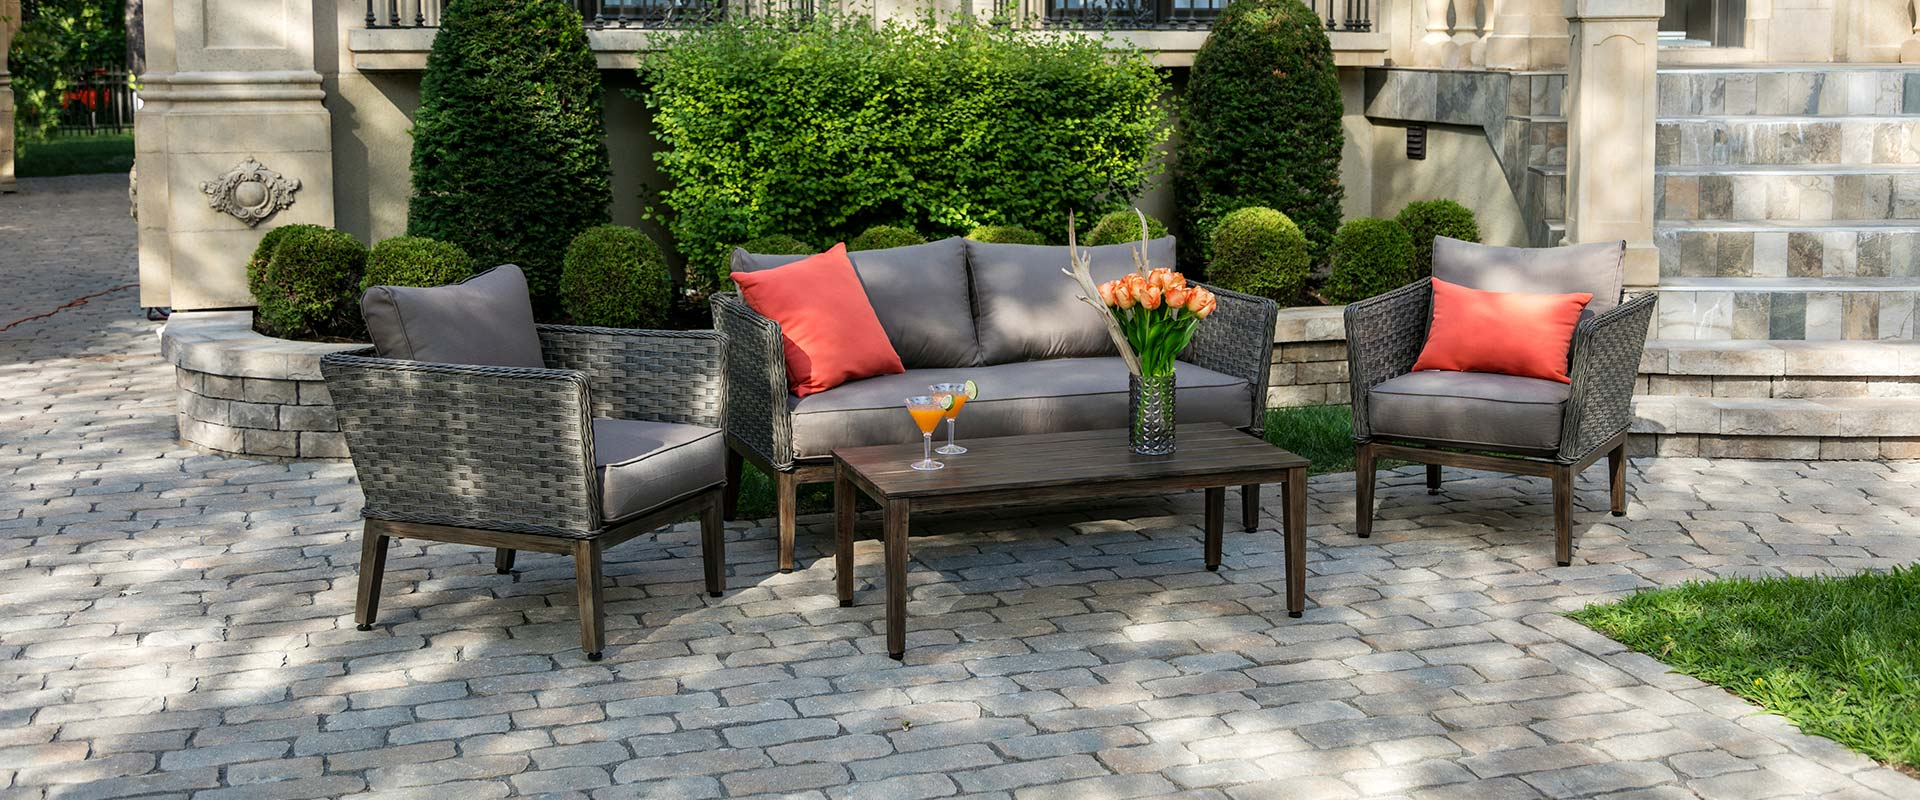 Furniture Stores Burlington Ontario Patio Furniture Products And Outdoor Patio Accessories